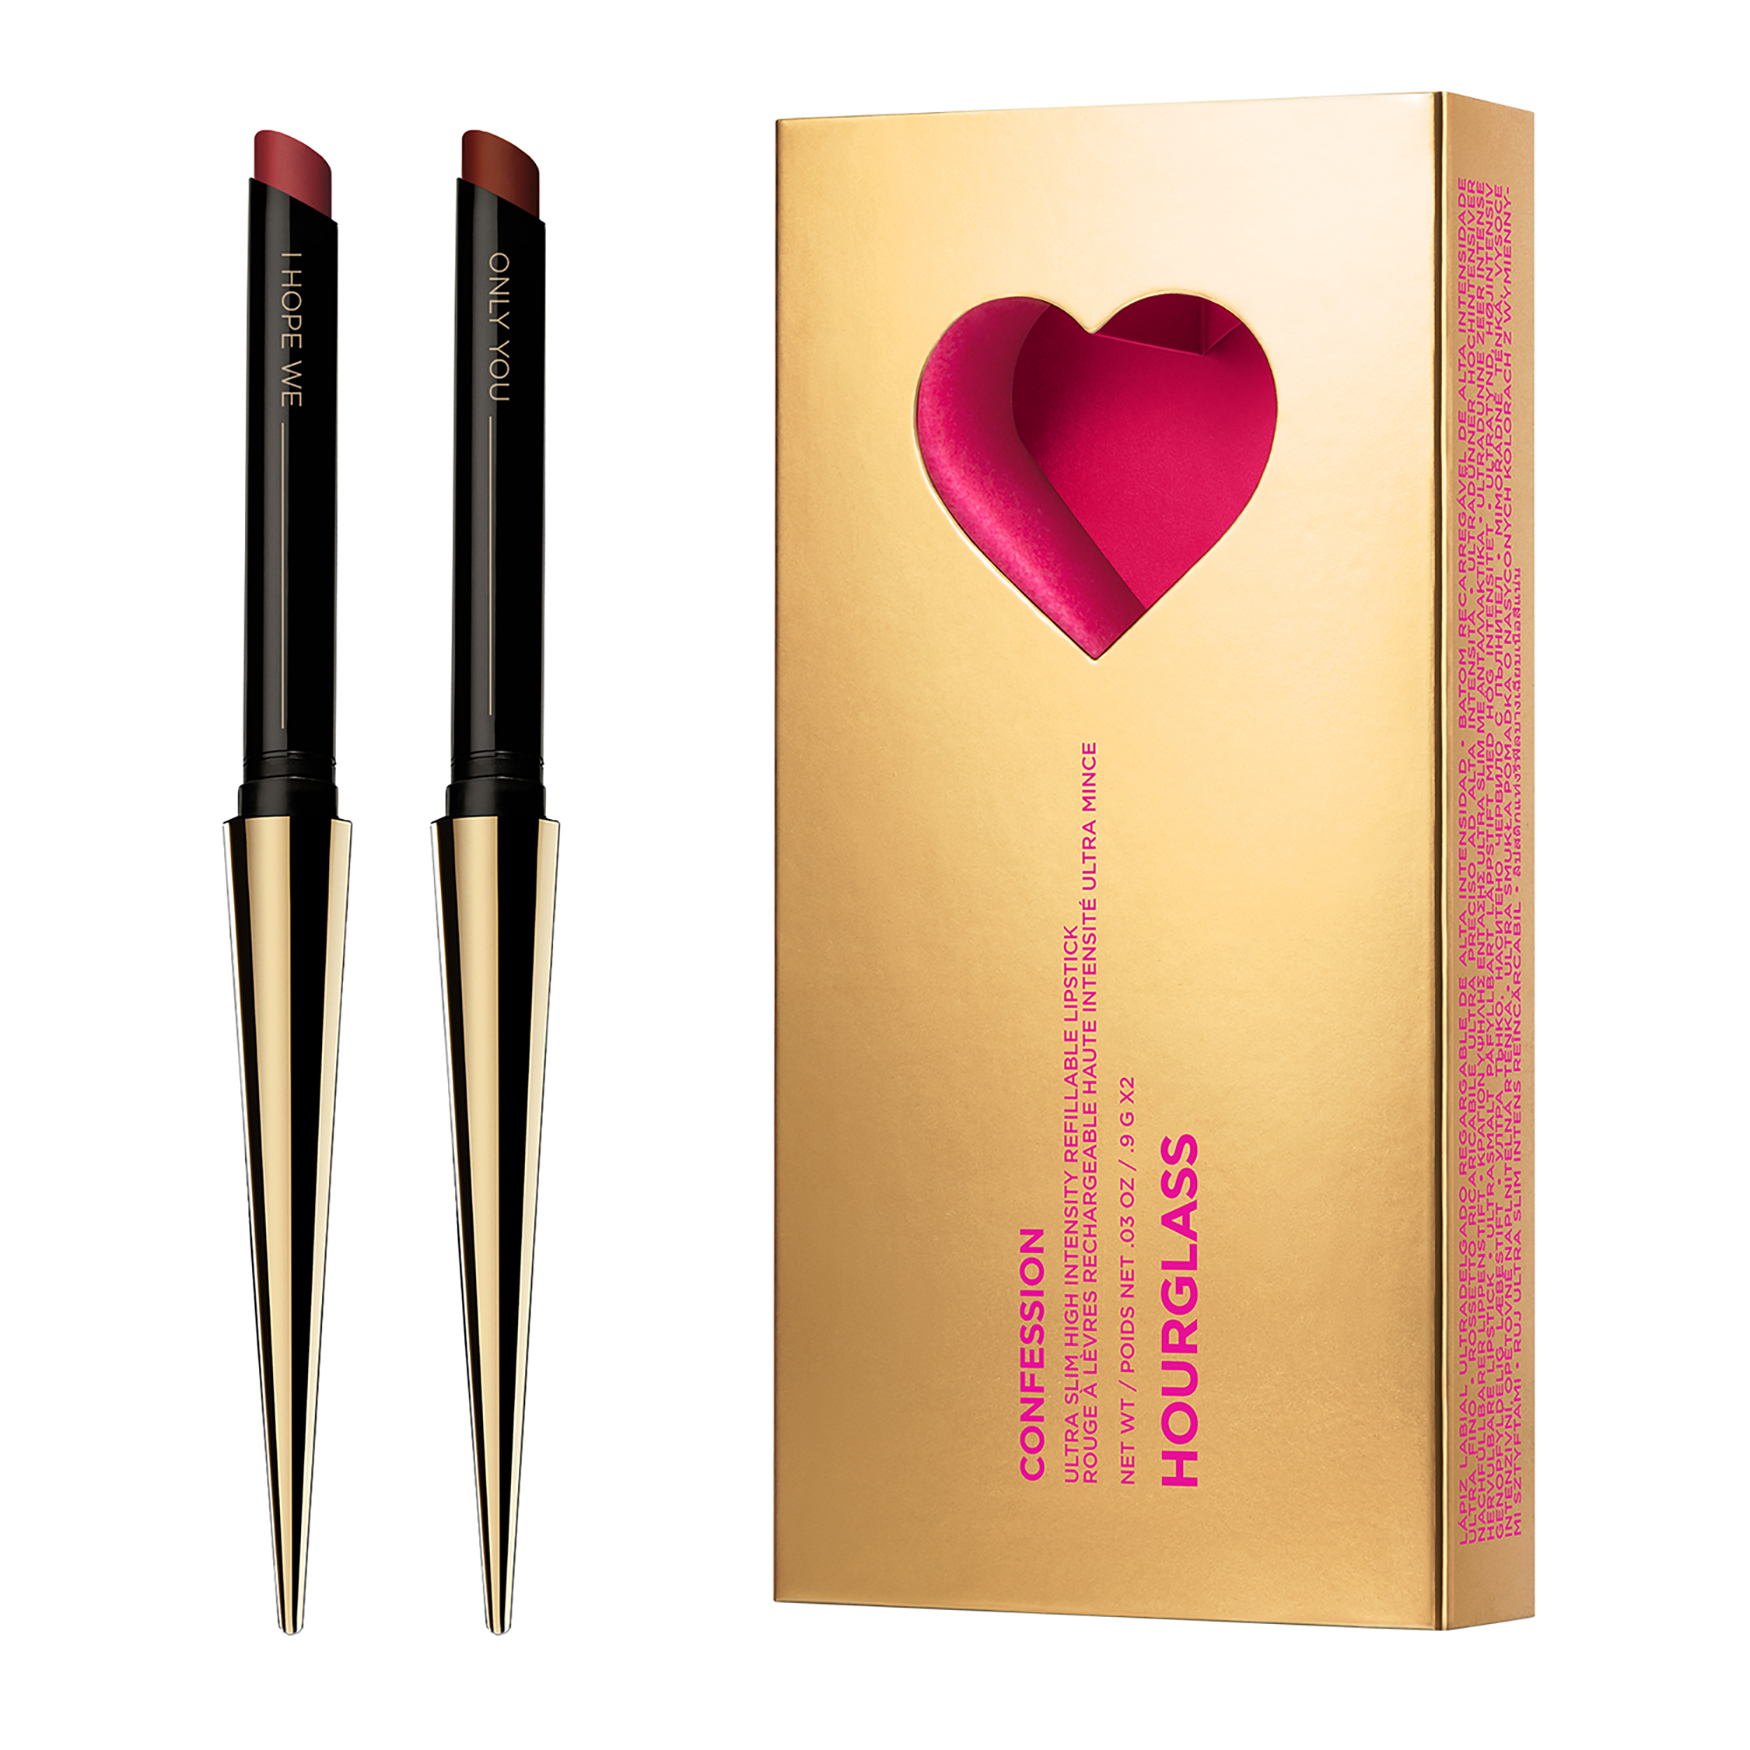 Confession Ultra Slim High Intensity Refillable Lipstick Duo Valentines Day 2020, , large